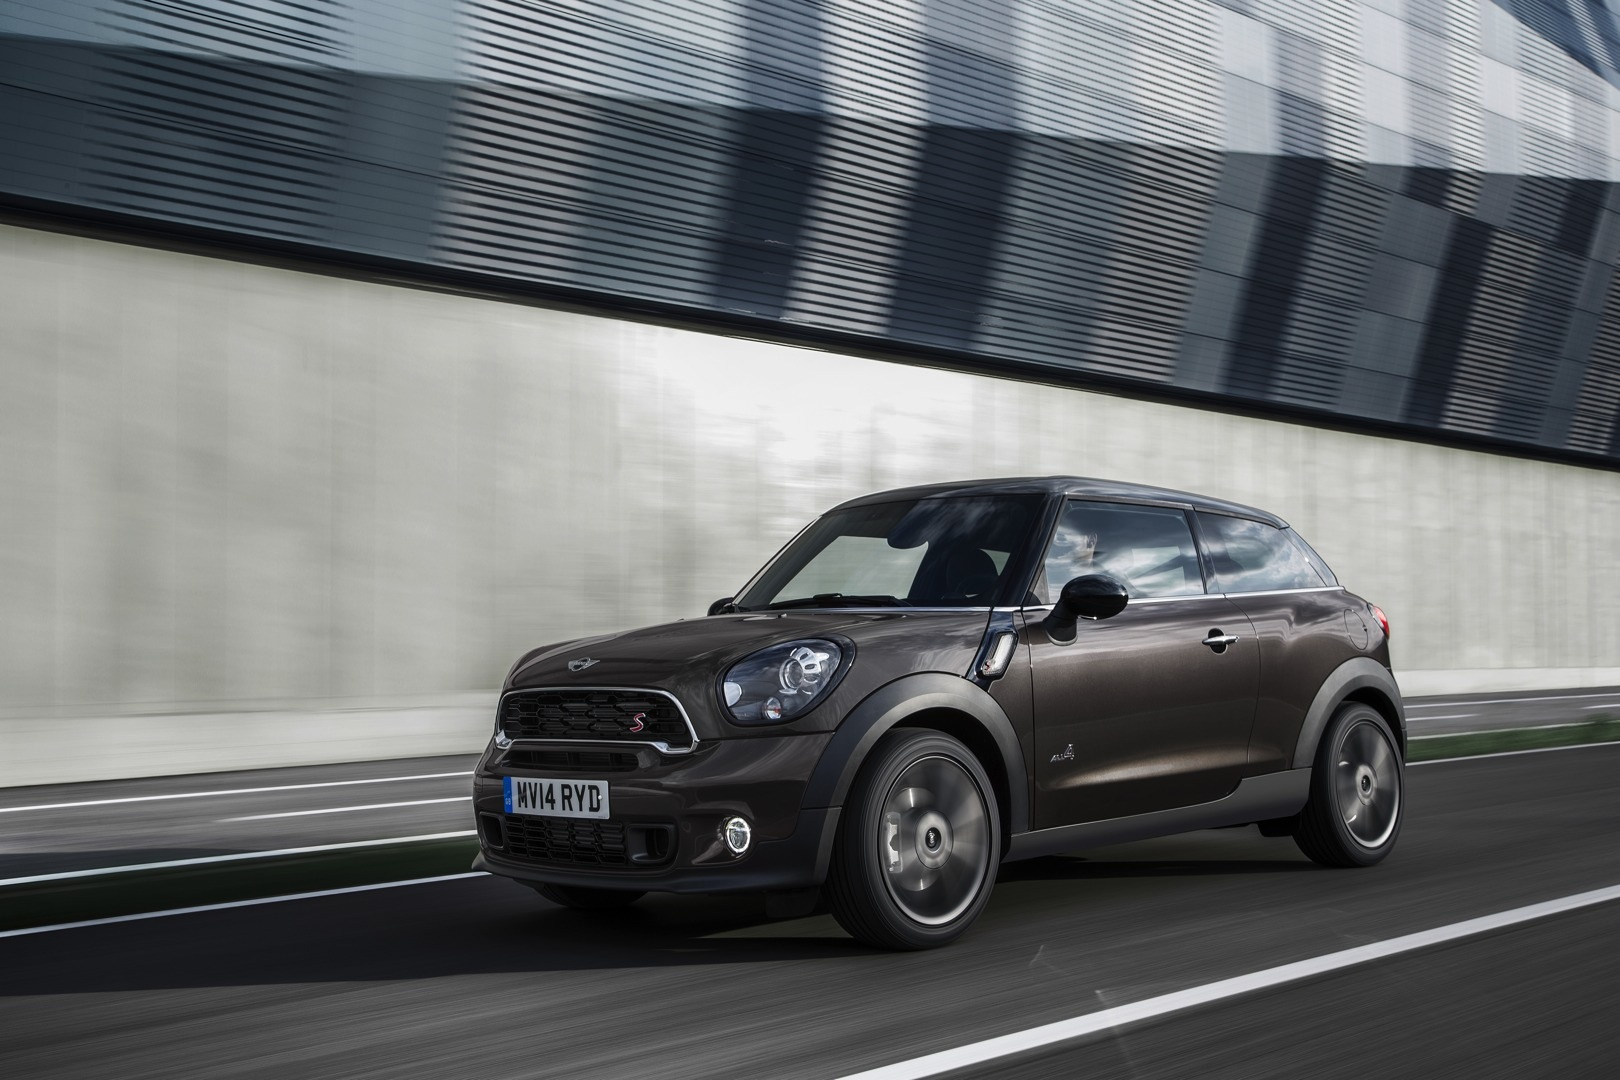 2013 mini cooper s paceman review by tflcar autoevolution. Black Bedroom Furniture Sets. Home Design Ideas